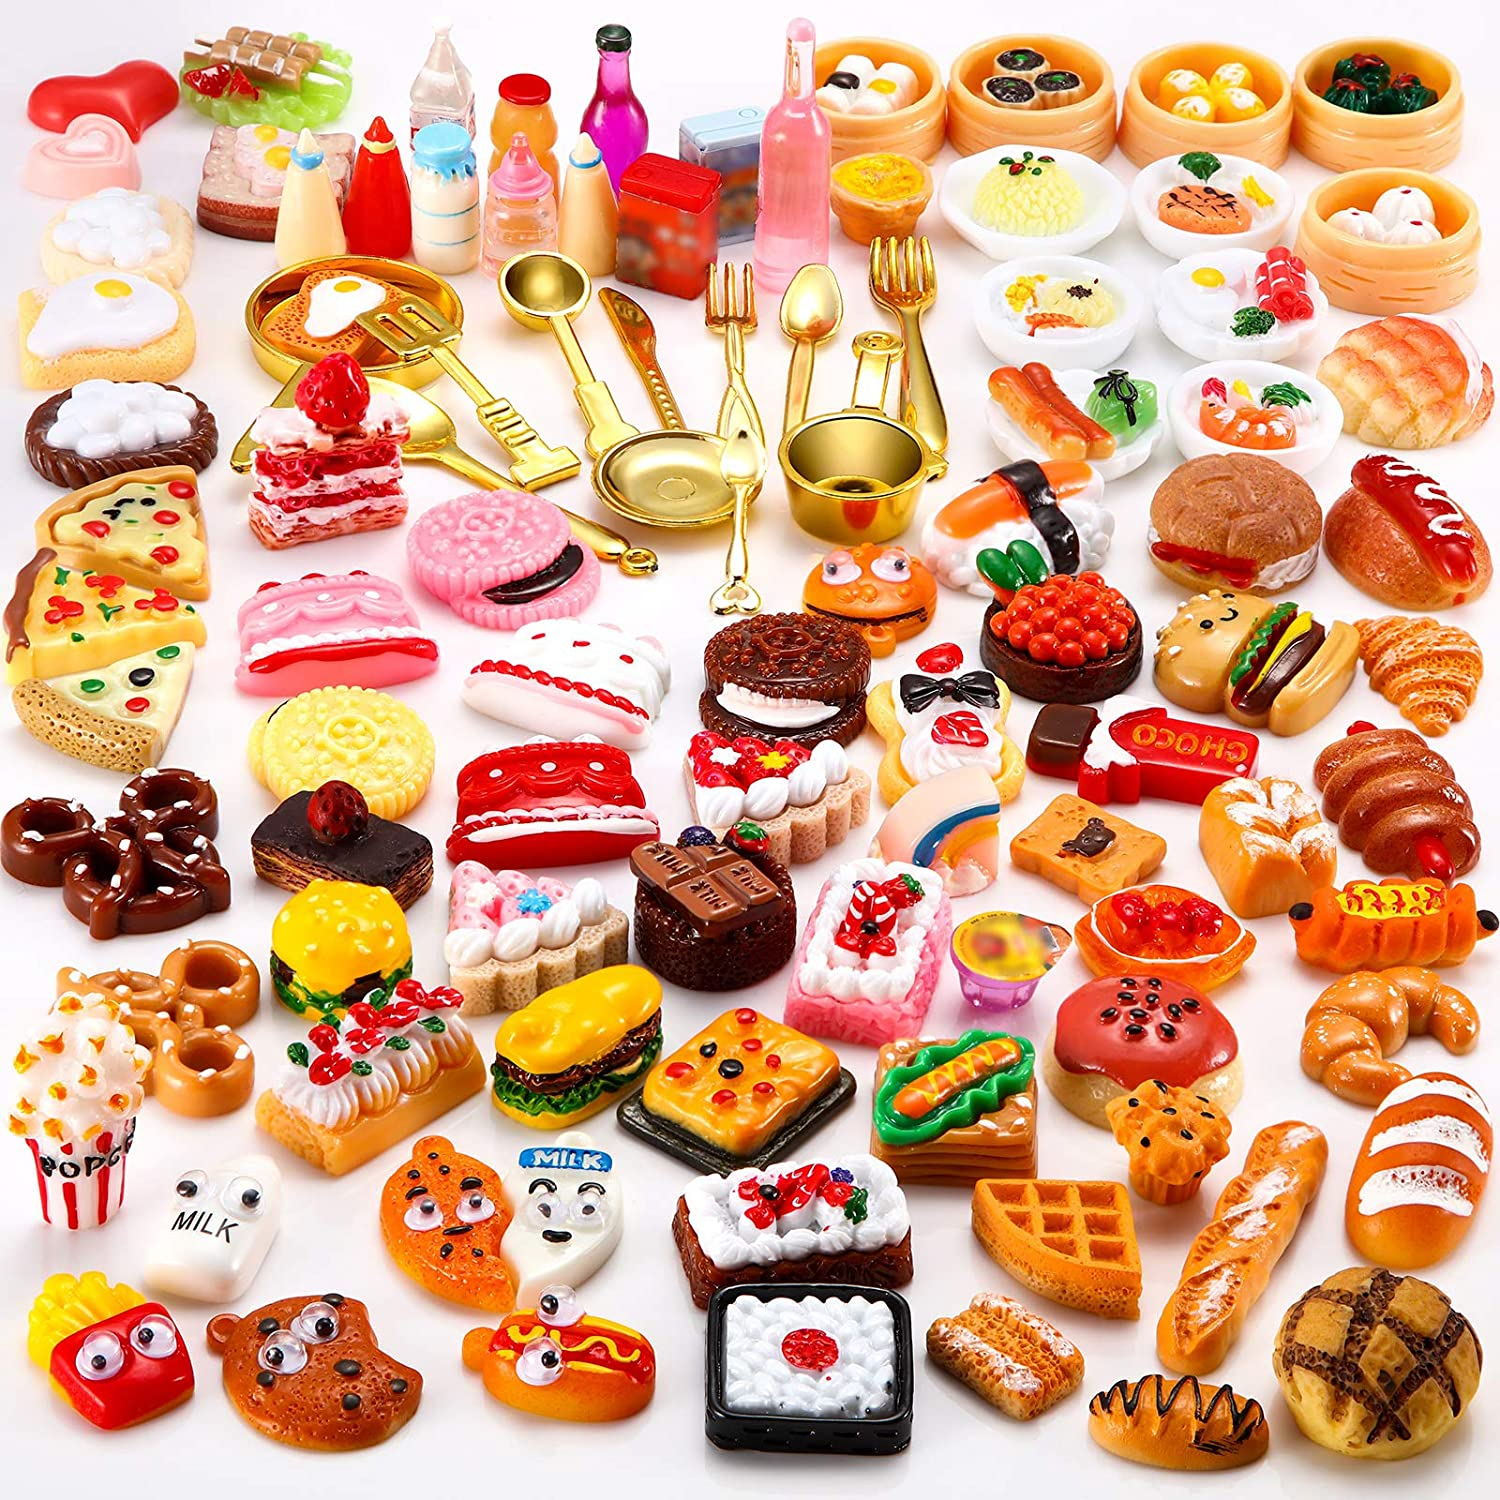 Sumind 100 Pieces Miniature Food Drinks Toys Mixed Pretend Foods for Dollhouse Kitchen Play Resin Mini Food for Adults Teenagers Doll House